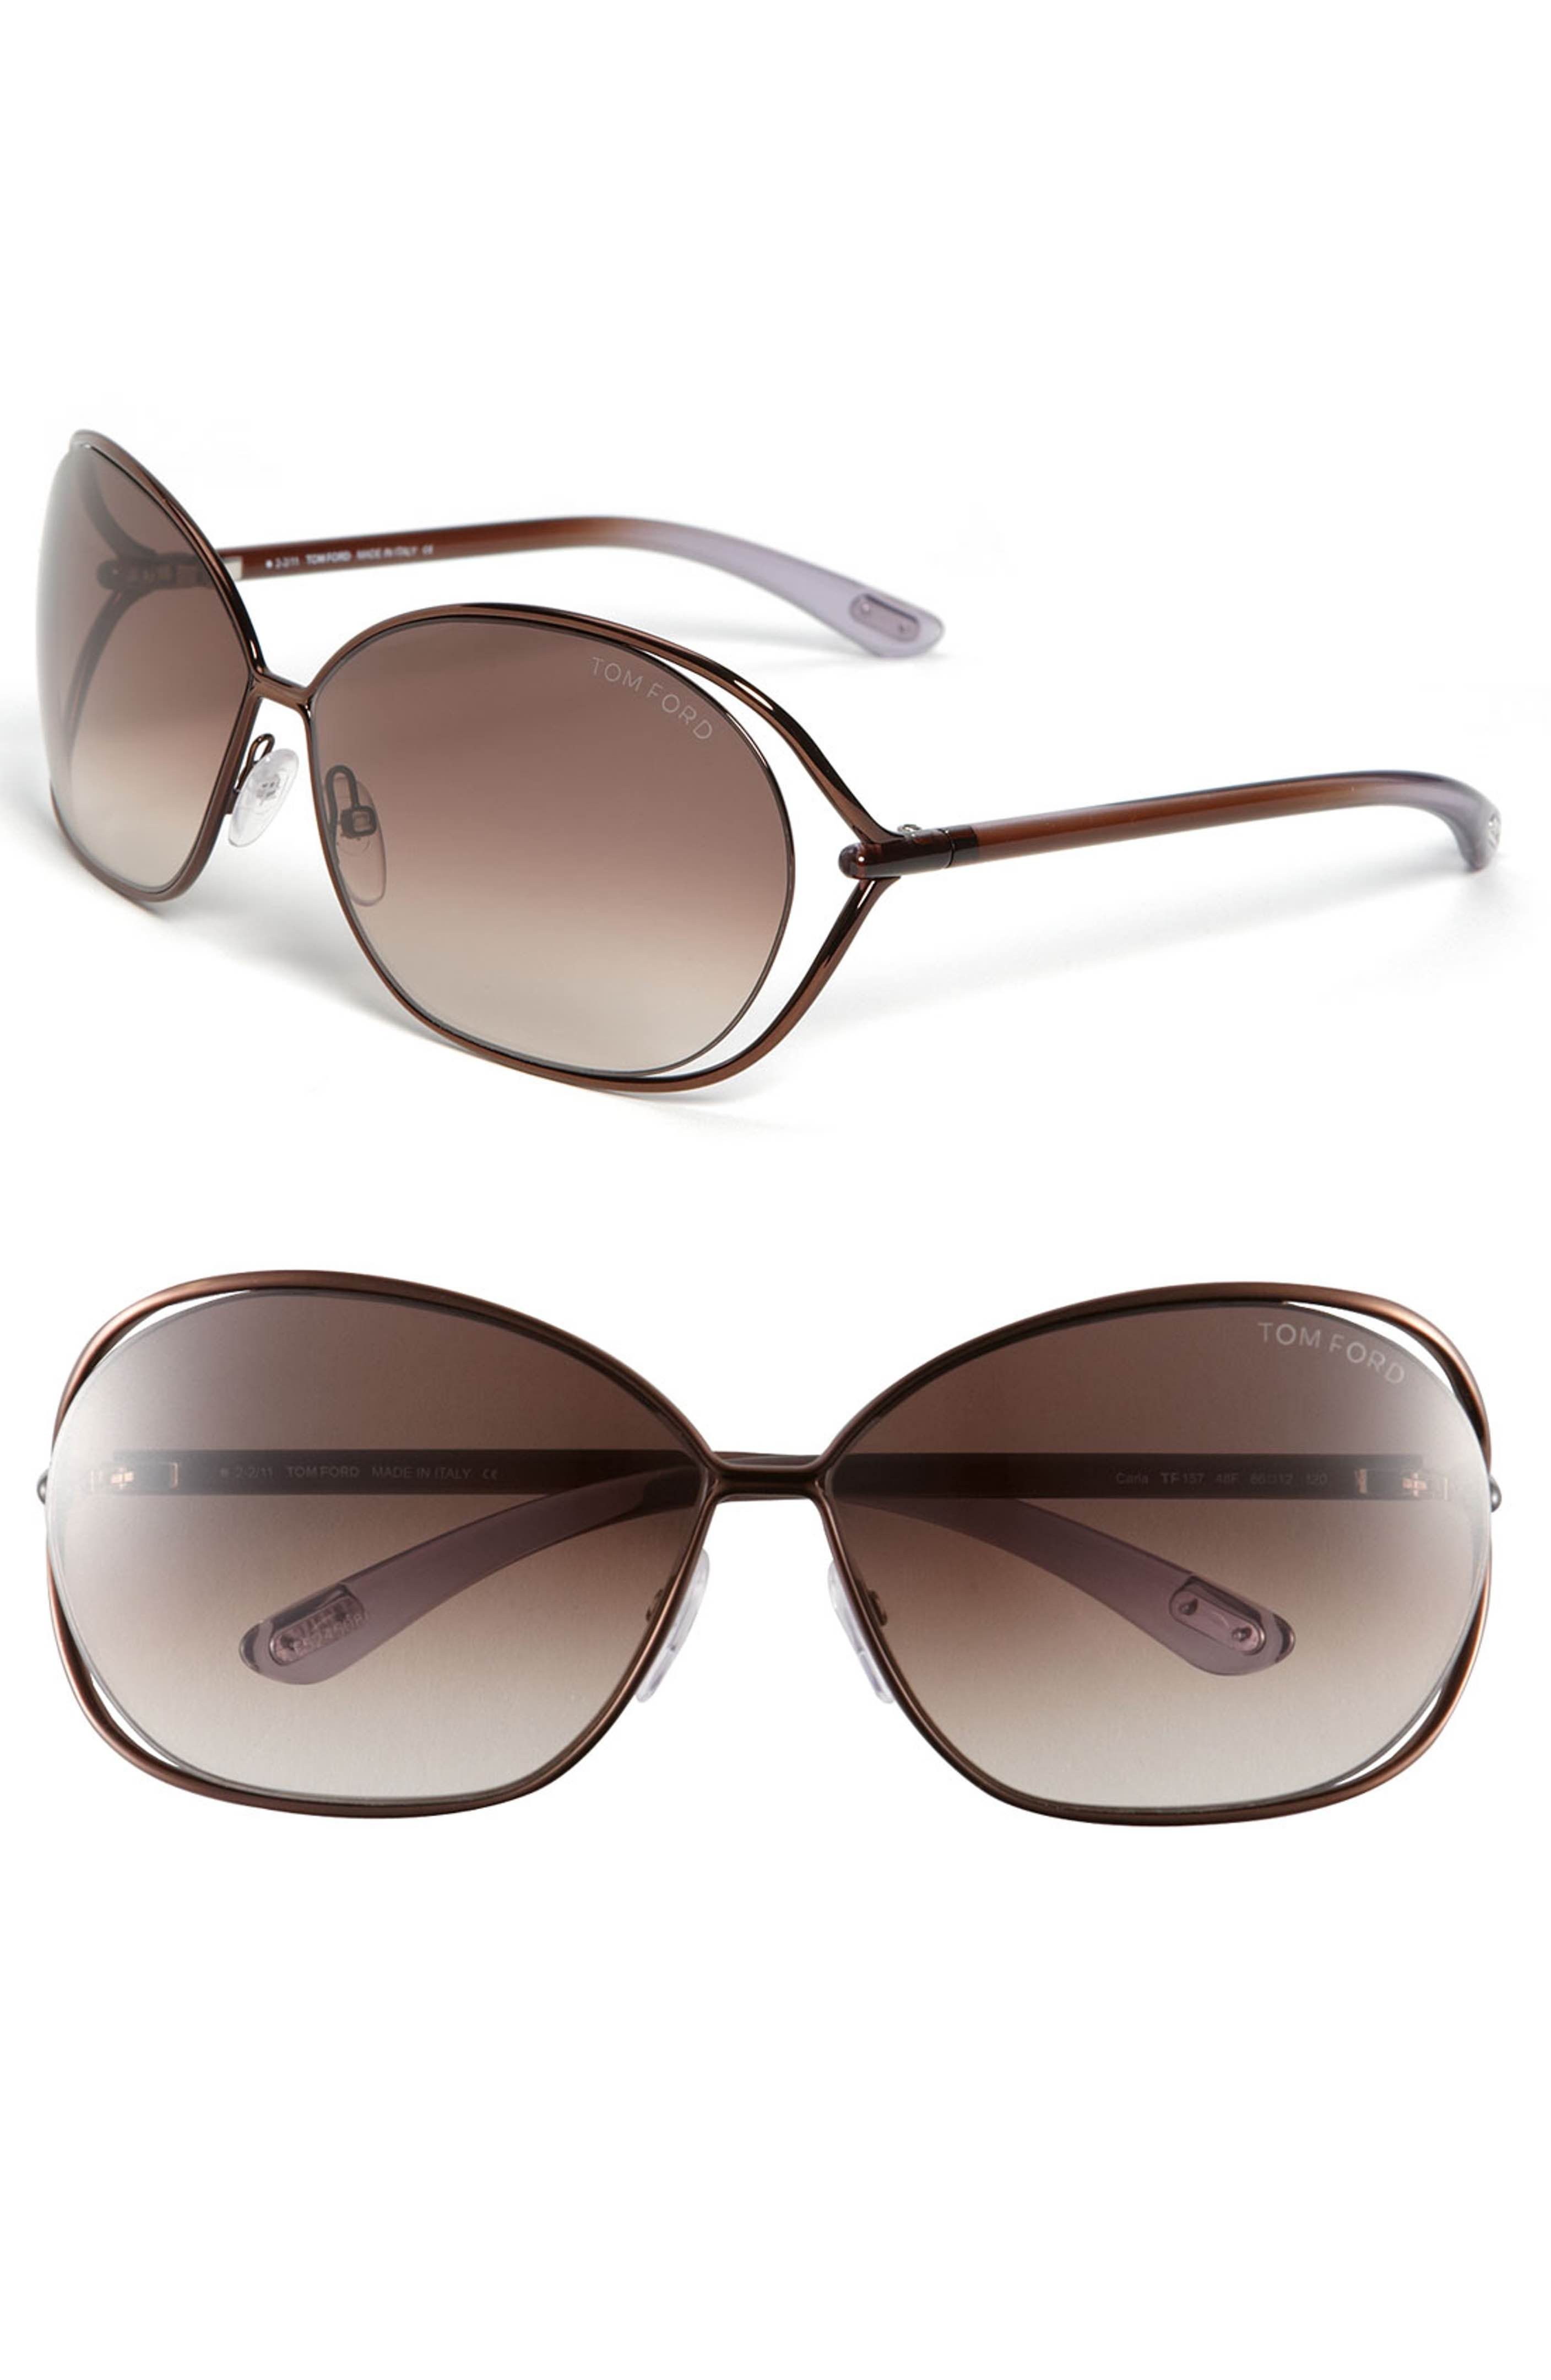 a977f88ff3 Main Image - Tom Ford  Carla  66mm Oversized Round Metal Sunglasses ...